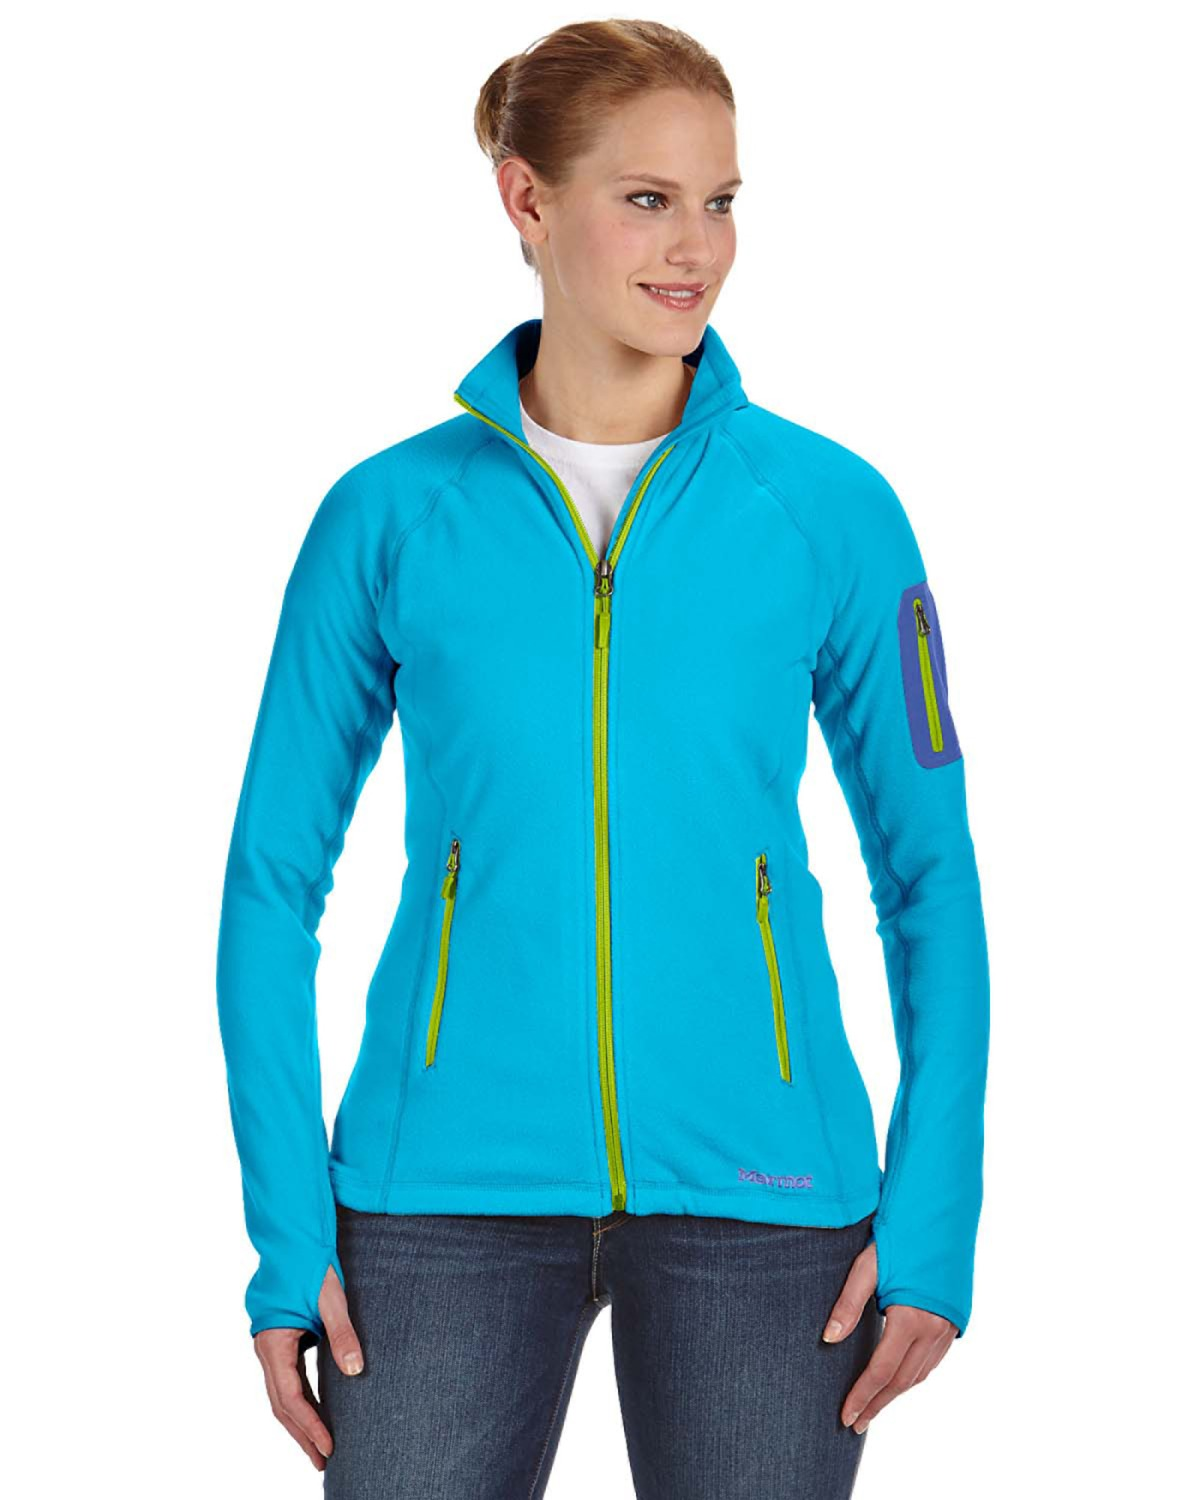 Marmot - 88290, Ladies' Flashpoint Jacket, Embroidery, Screen Printing - Logo Masters International